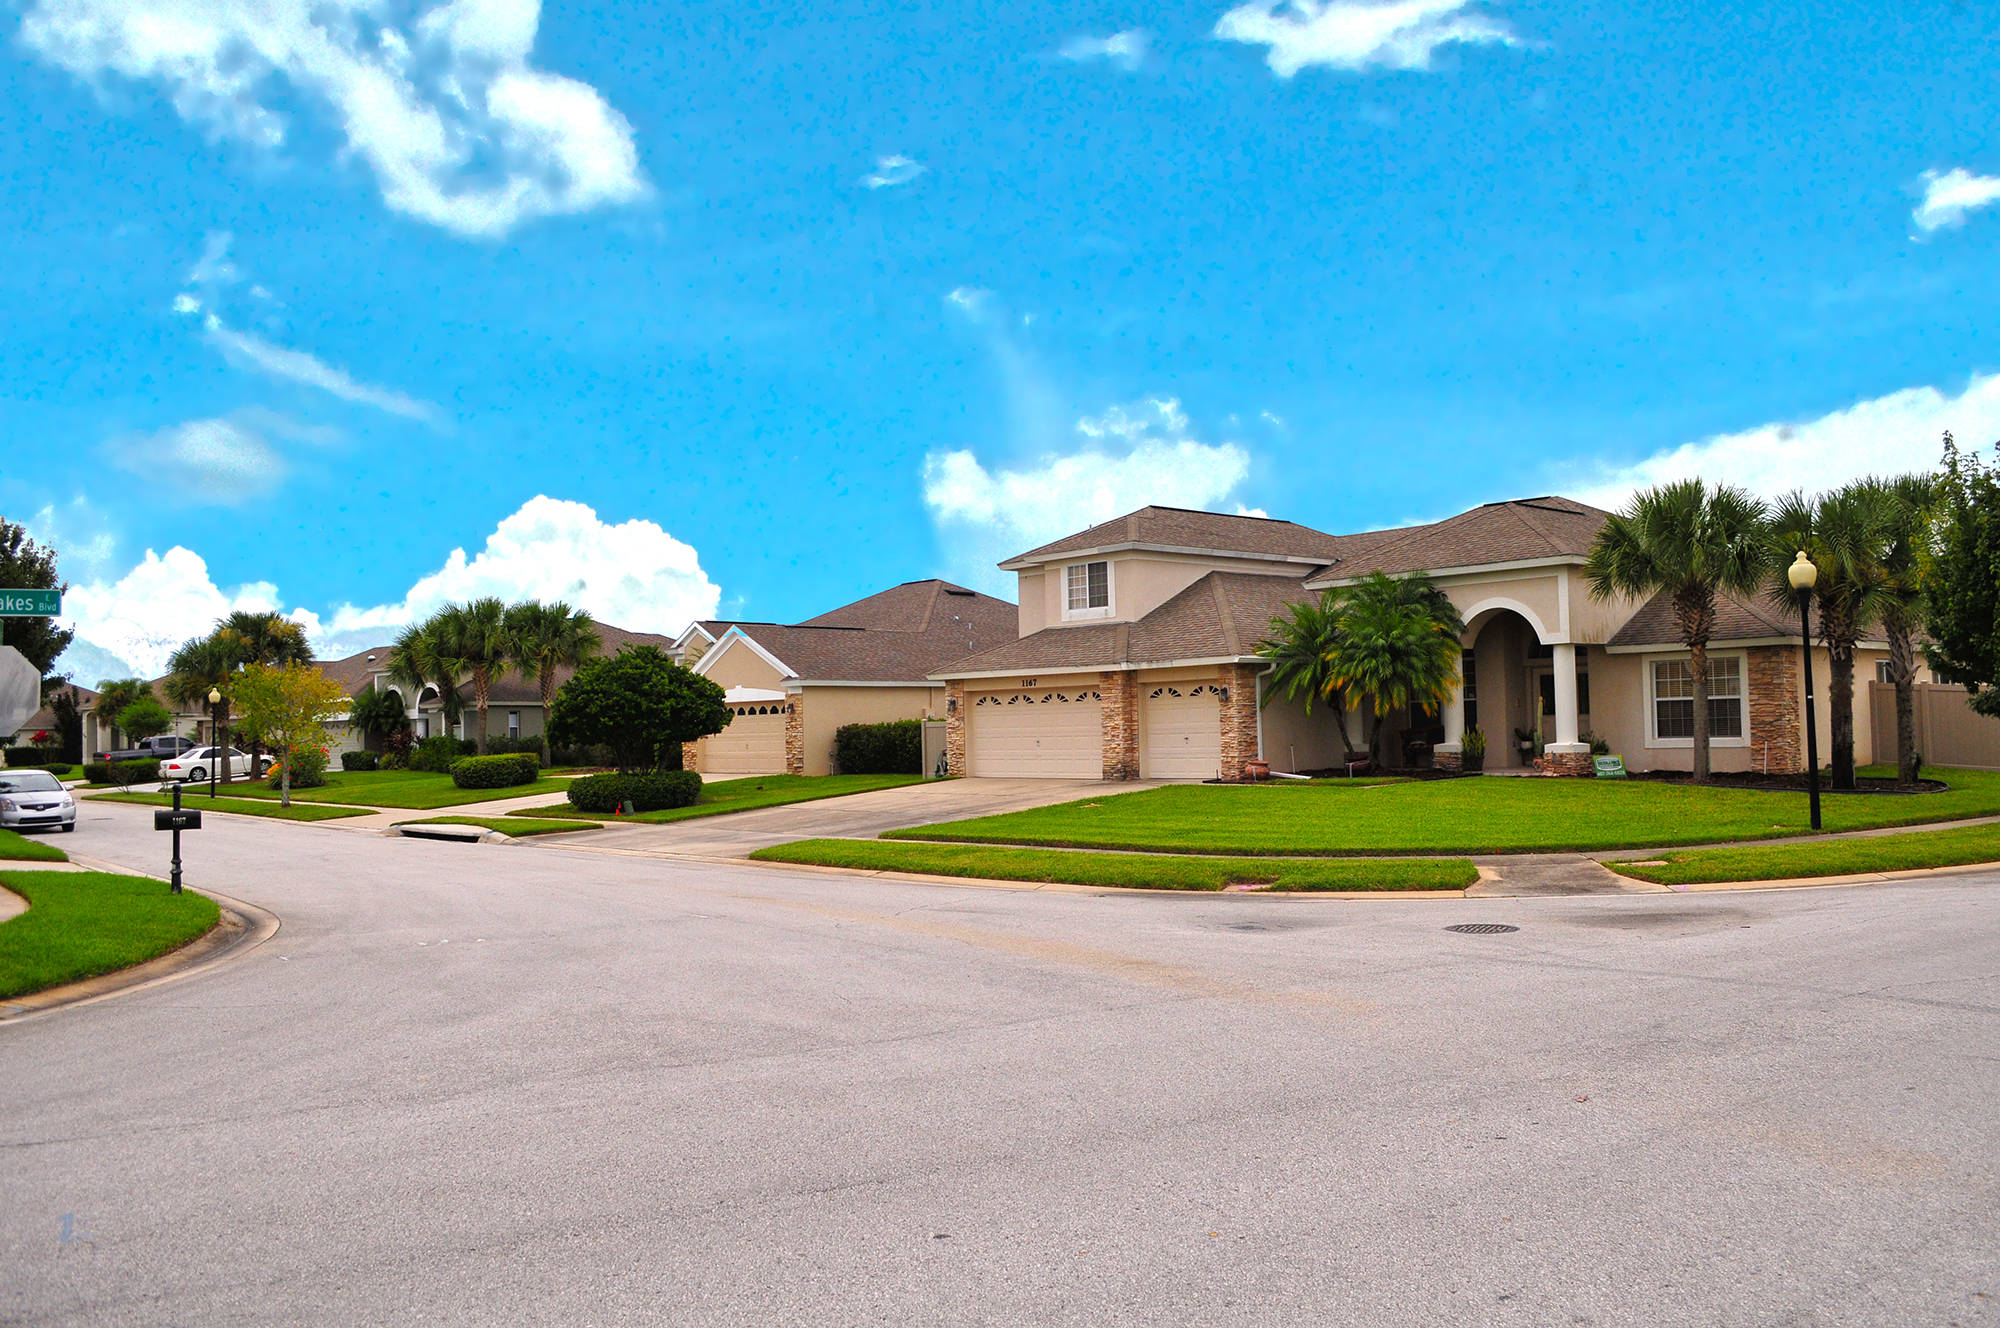 Homes For Sale In Indian Lakes, Saint Cloud, Florida